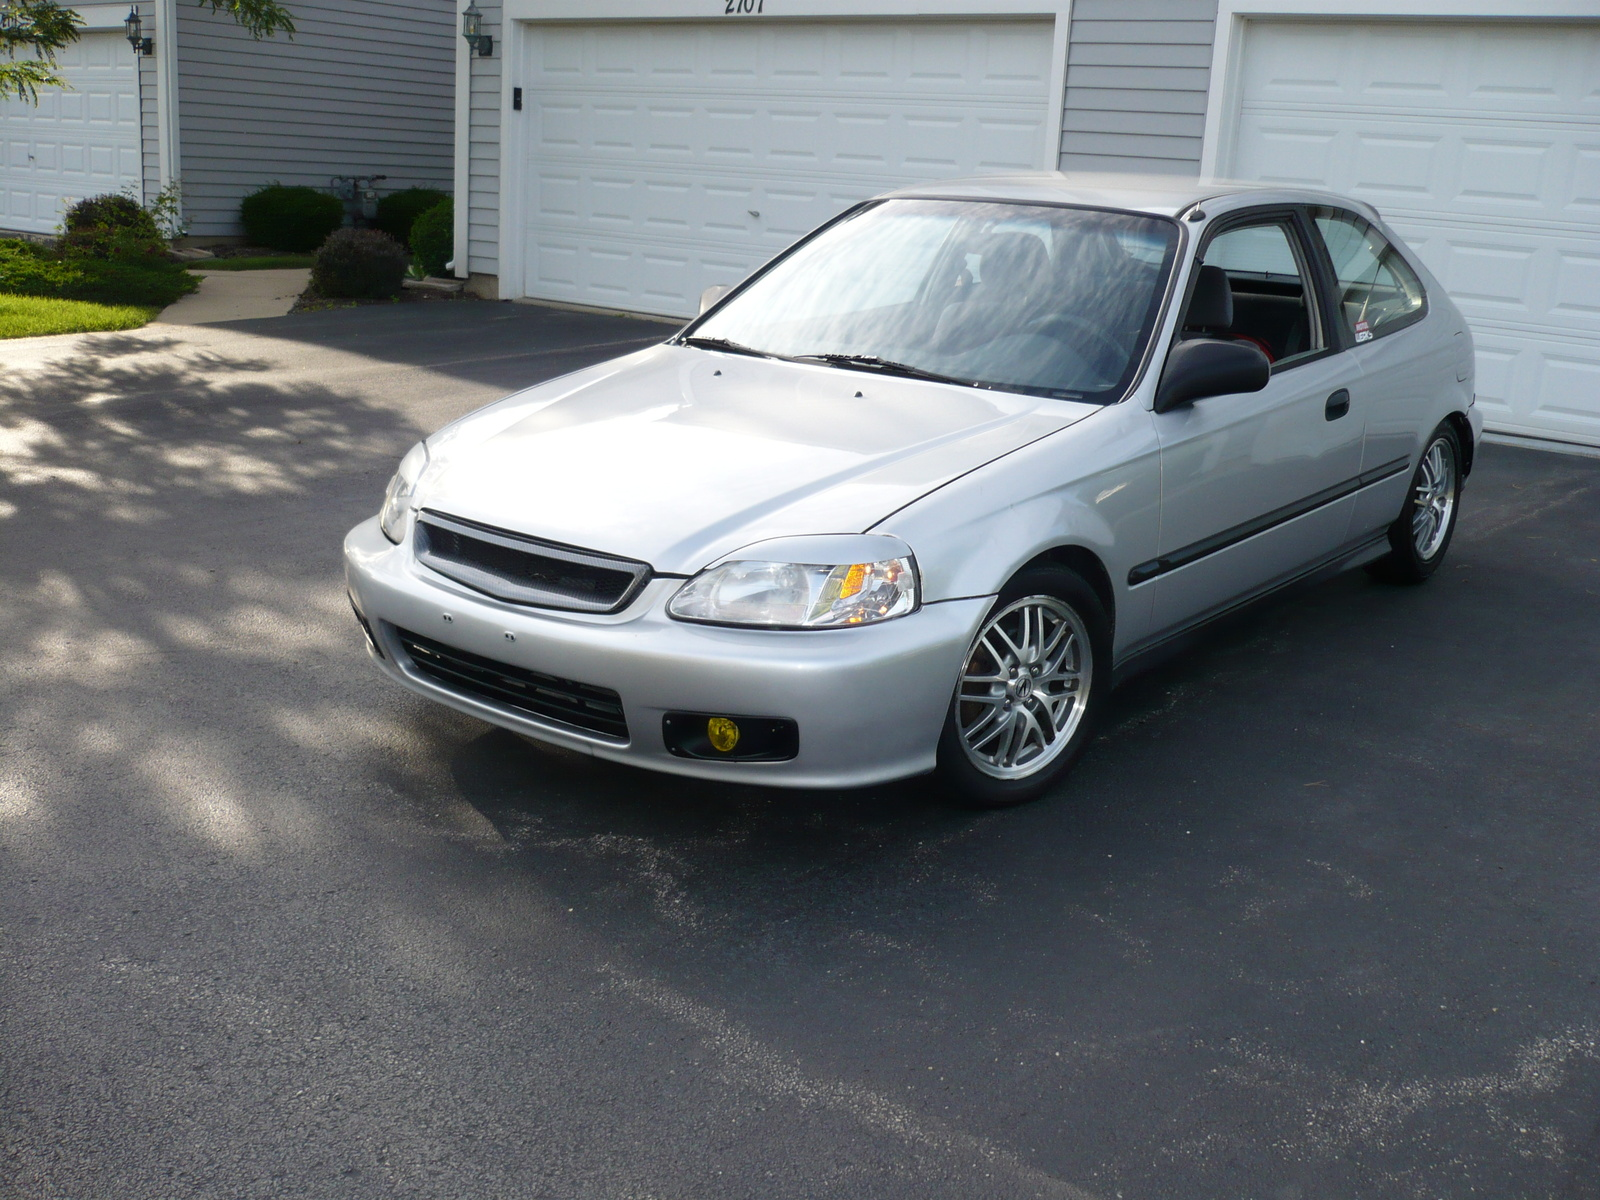 1993 Honda Civic Hatchback For Sale 1999 Honda Civic - Pictures - CarGurus